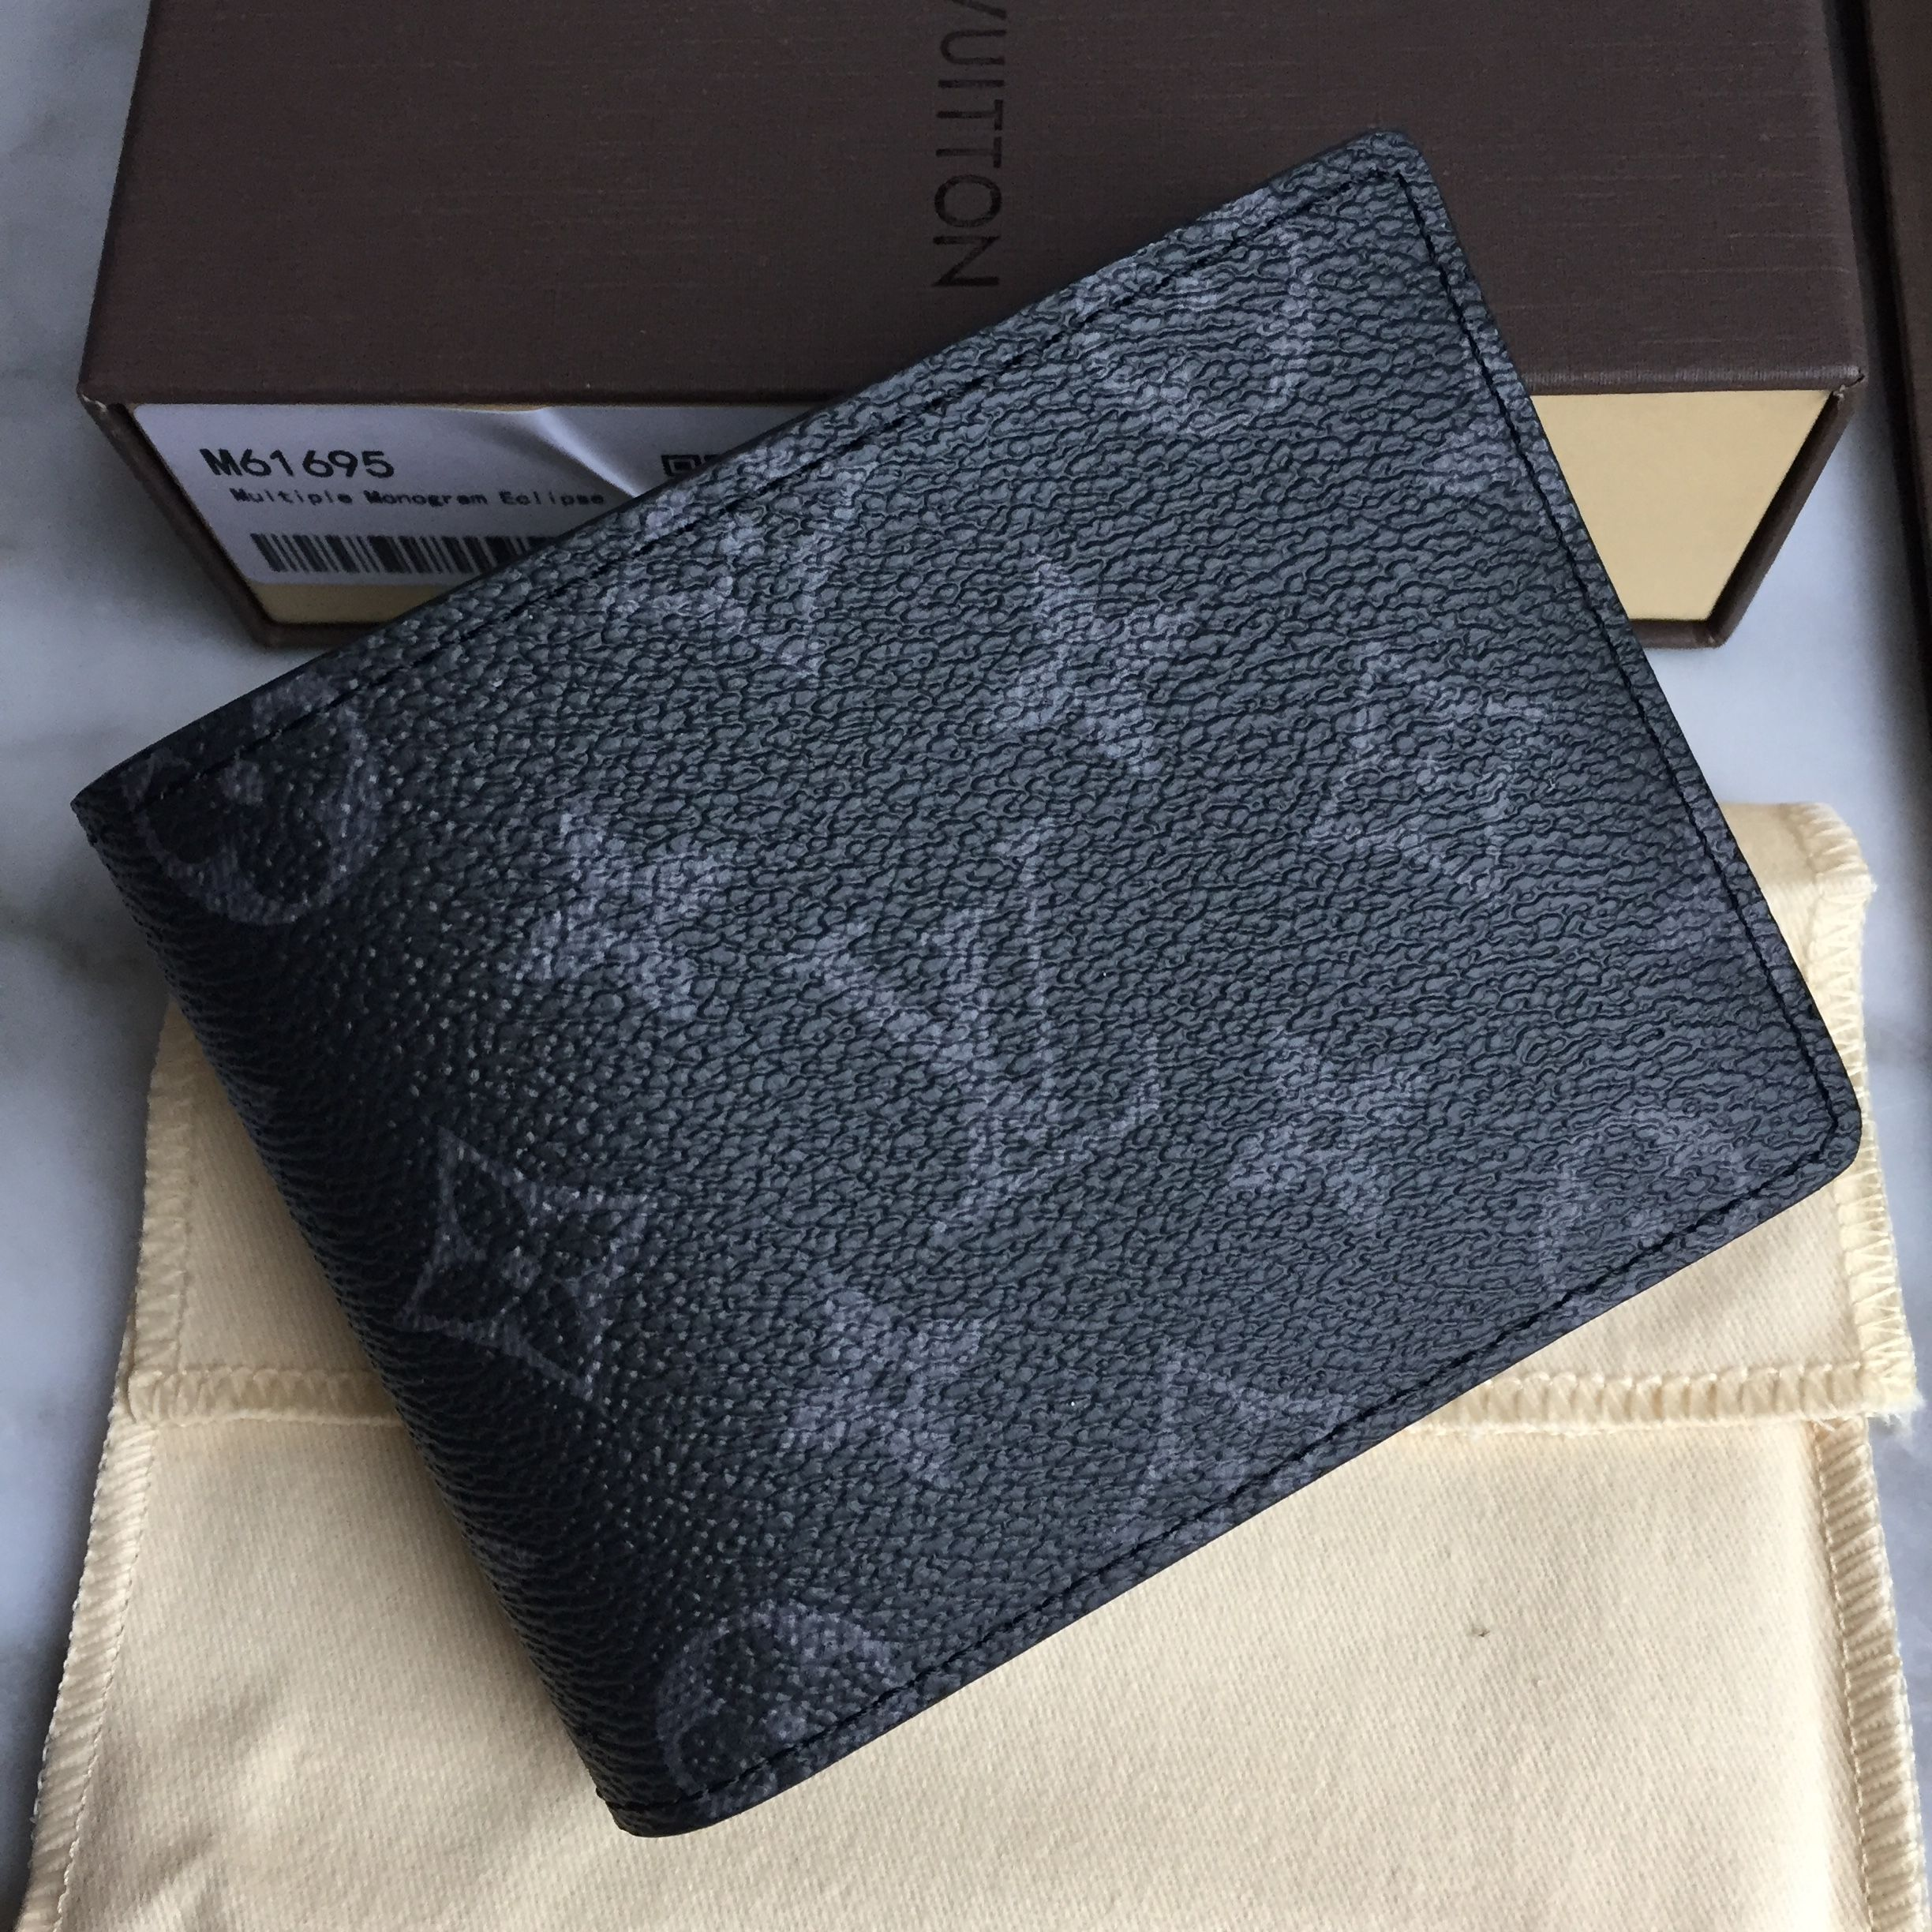 2a0a470005 Louis Vuitton Lv man short wallet 2 folds money clips | louis ...